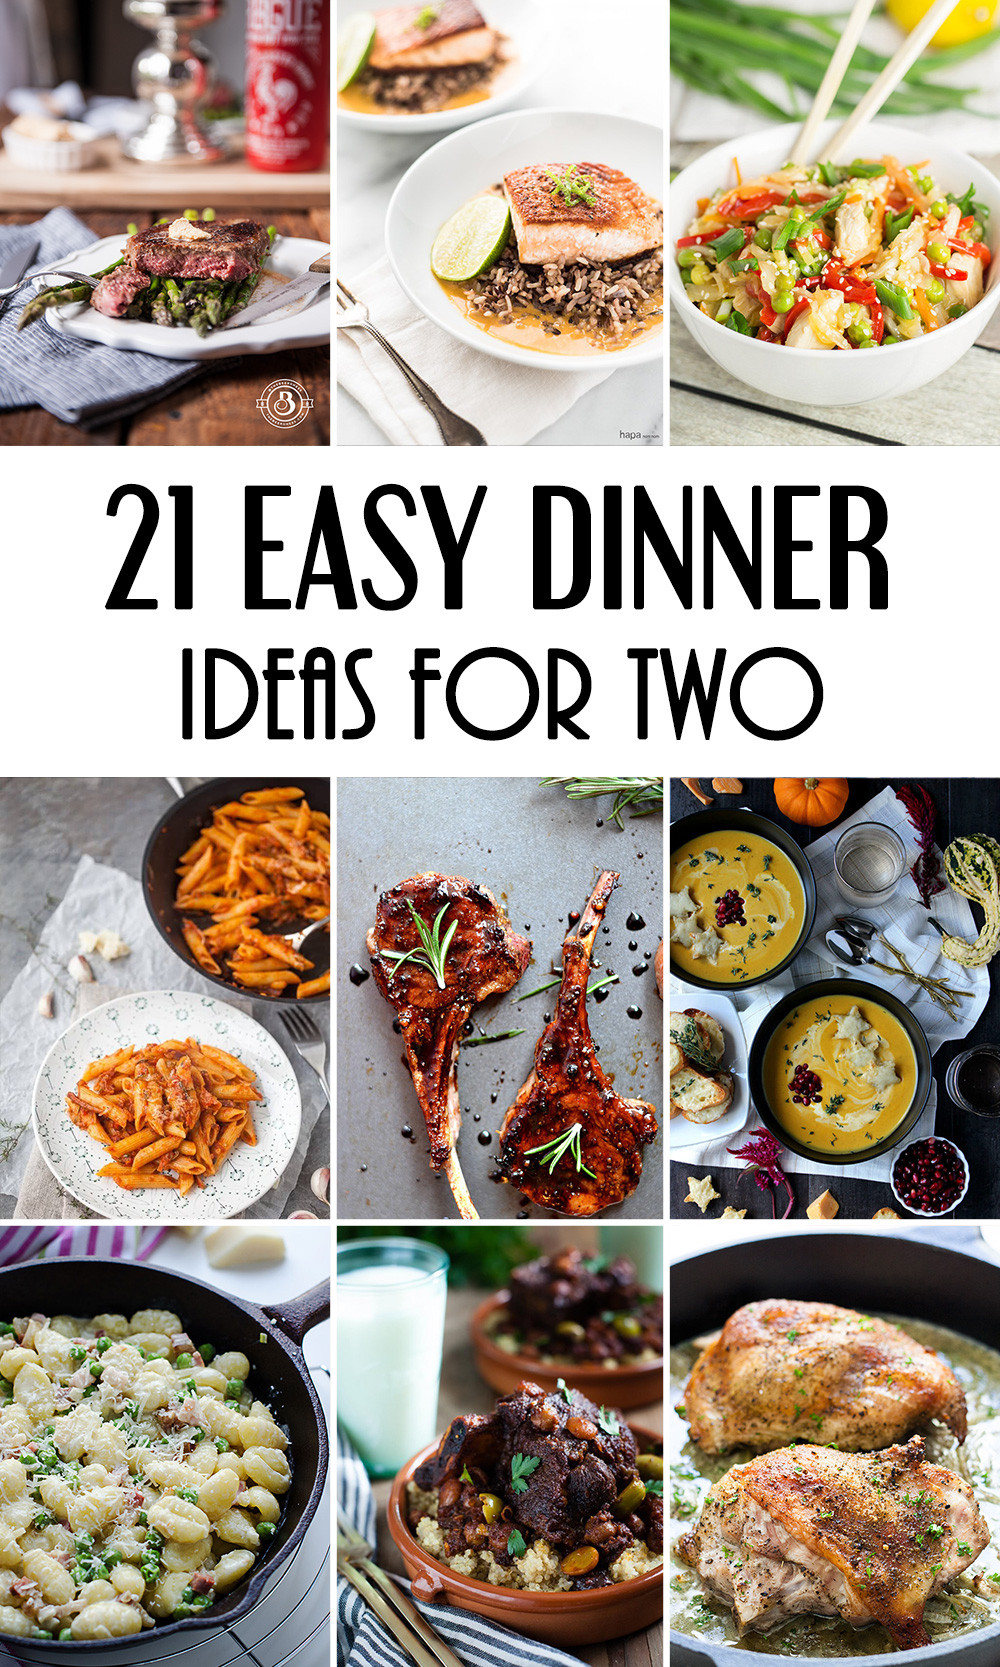 Easy Healthy Dinners For Two  21 Easy Dinner Ideas For Two That Will Impress Your Loved e